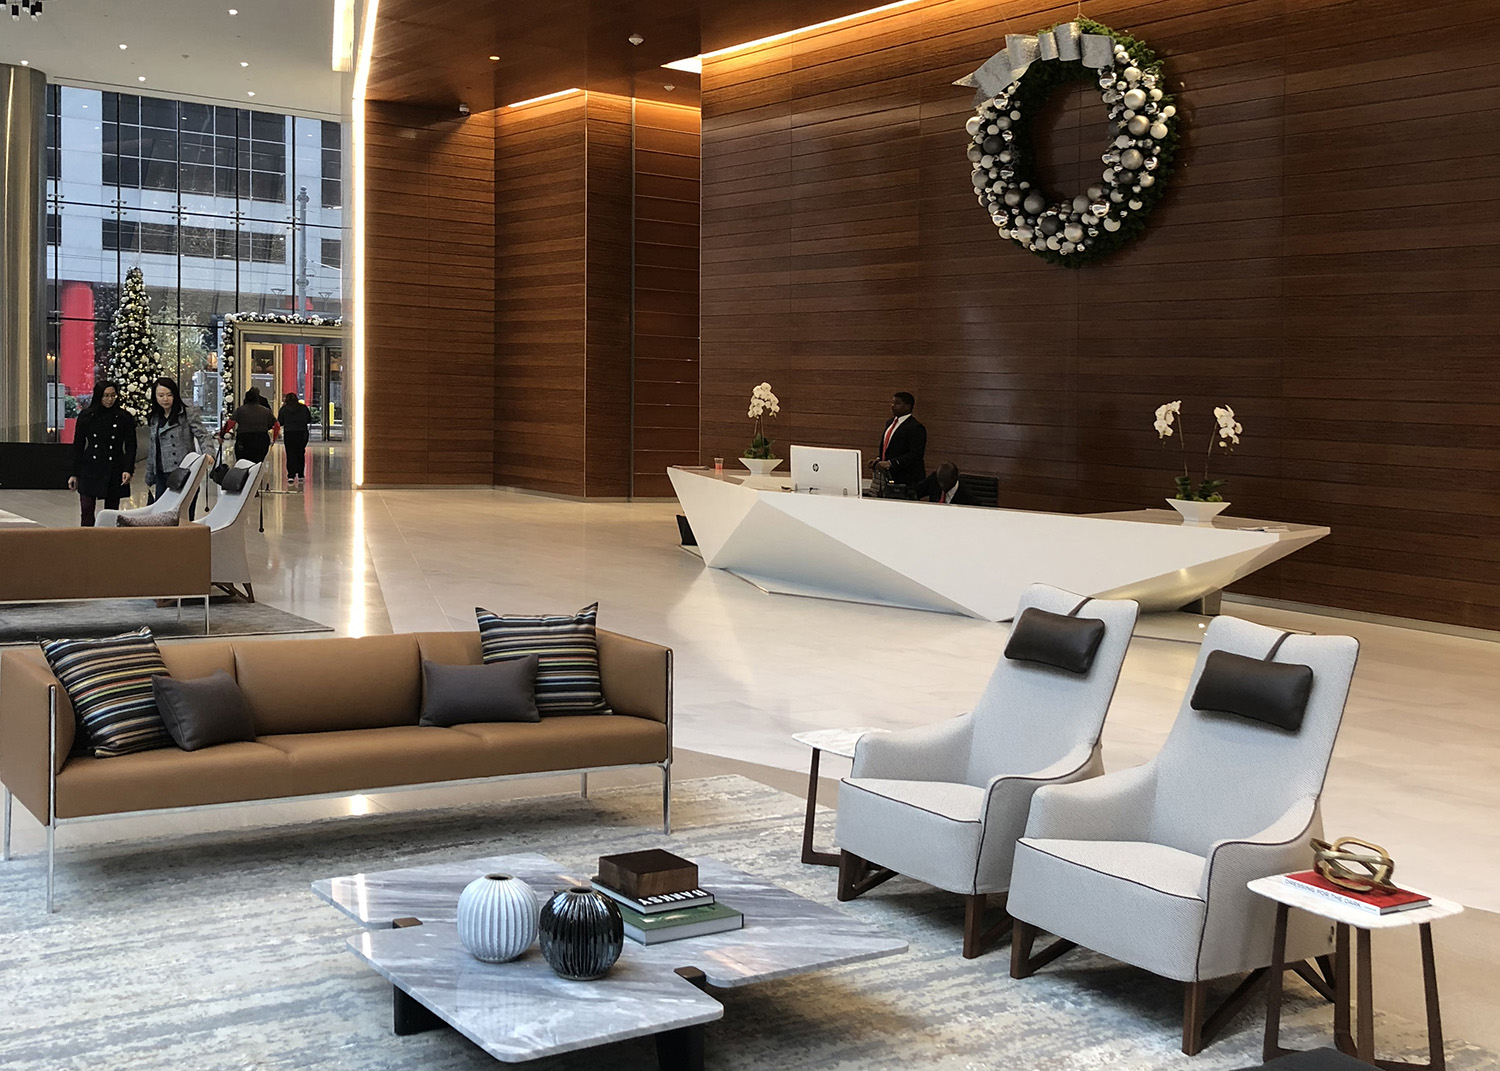 Building Repositioning Lobby Renovation 609 Main St Houston Lobby Seating Wood Wall Warm Neutrals